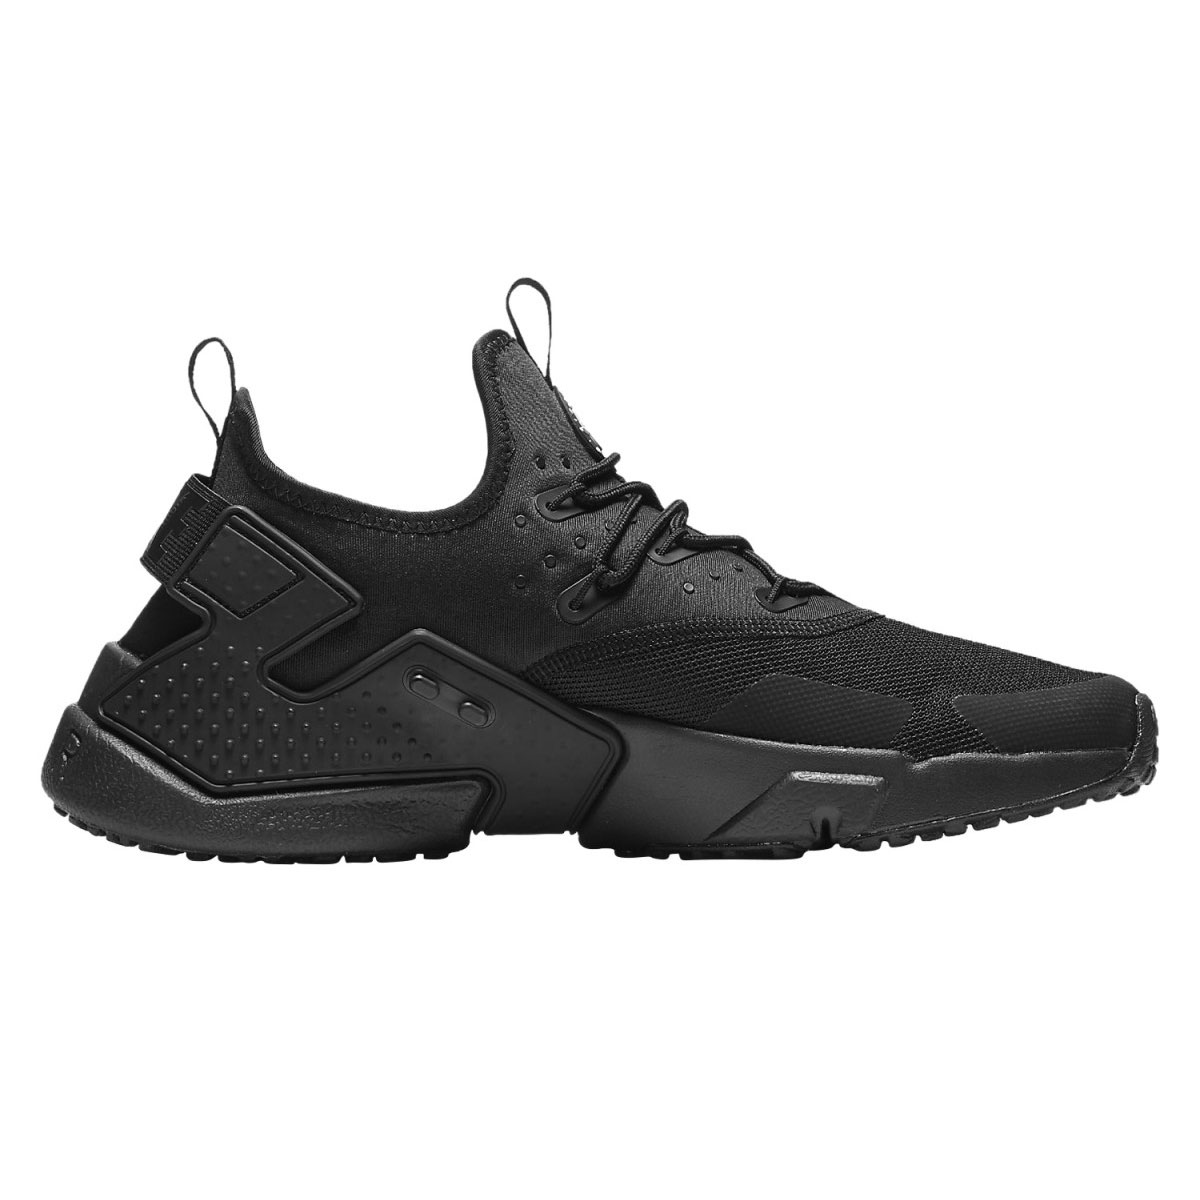 official photos be02c 57427 Nike Air Huarache Drift Herren Sneaker schwarz weiß AH7334 0